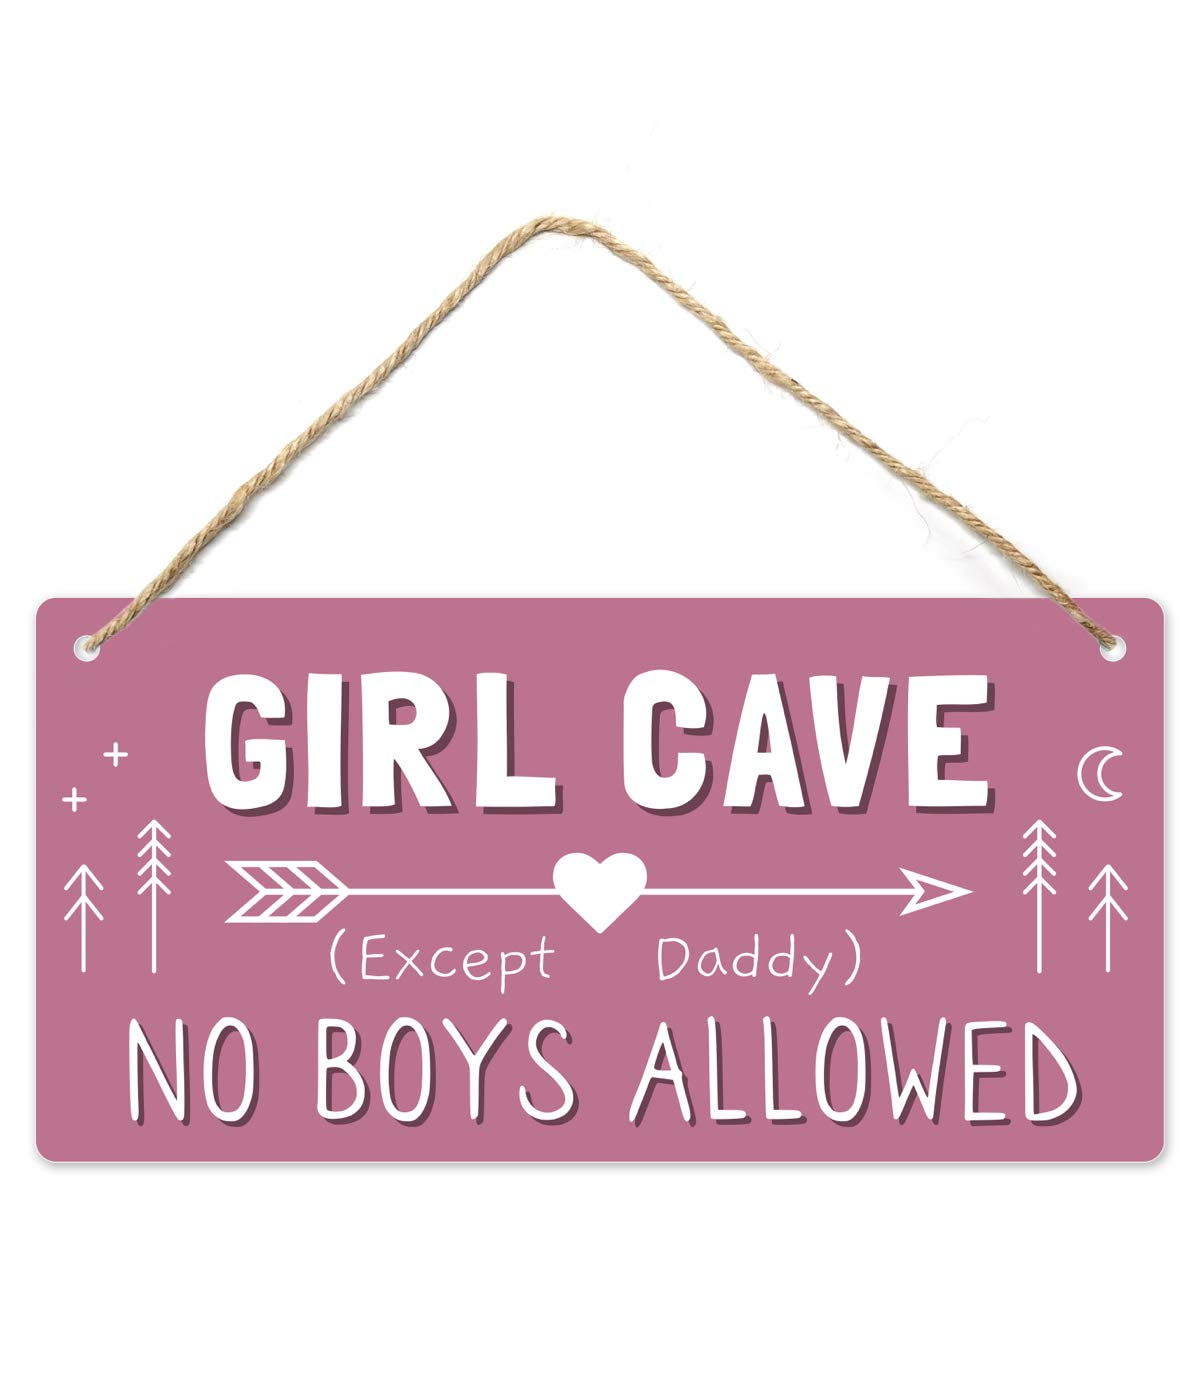 Girl Cave Sign, Girls Room Decorations for Bedroom, 12?x6? PVC Plastic Decoration Hanging Sign, High Precision Printing, Water Proof, Kids Room Signs for Door, No Boys Allowed Sign, Room Decor …